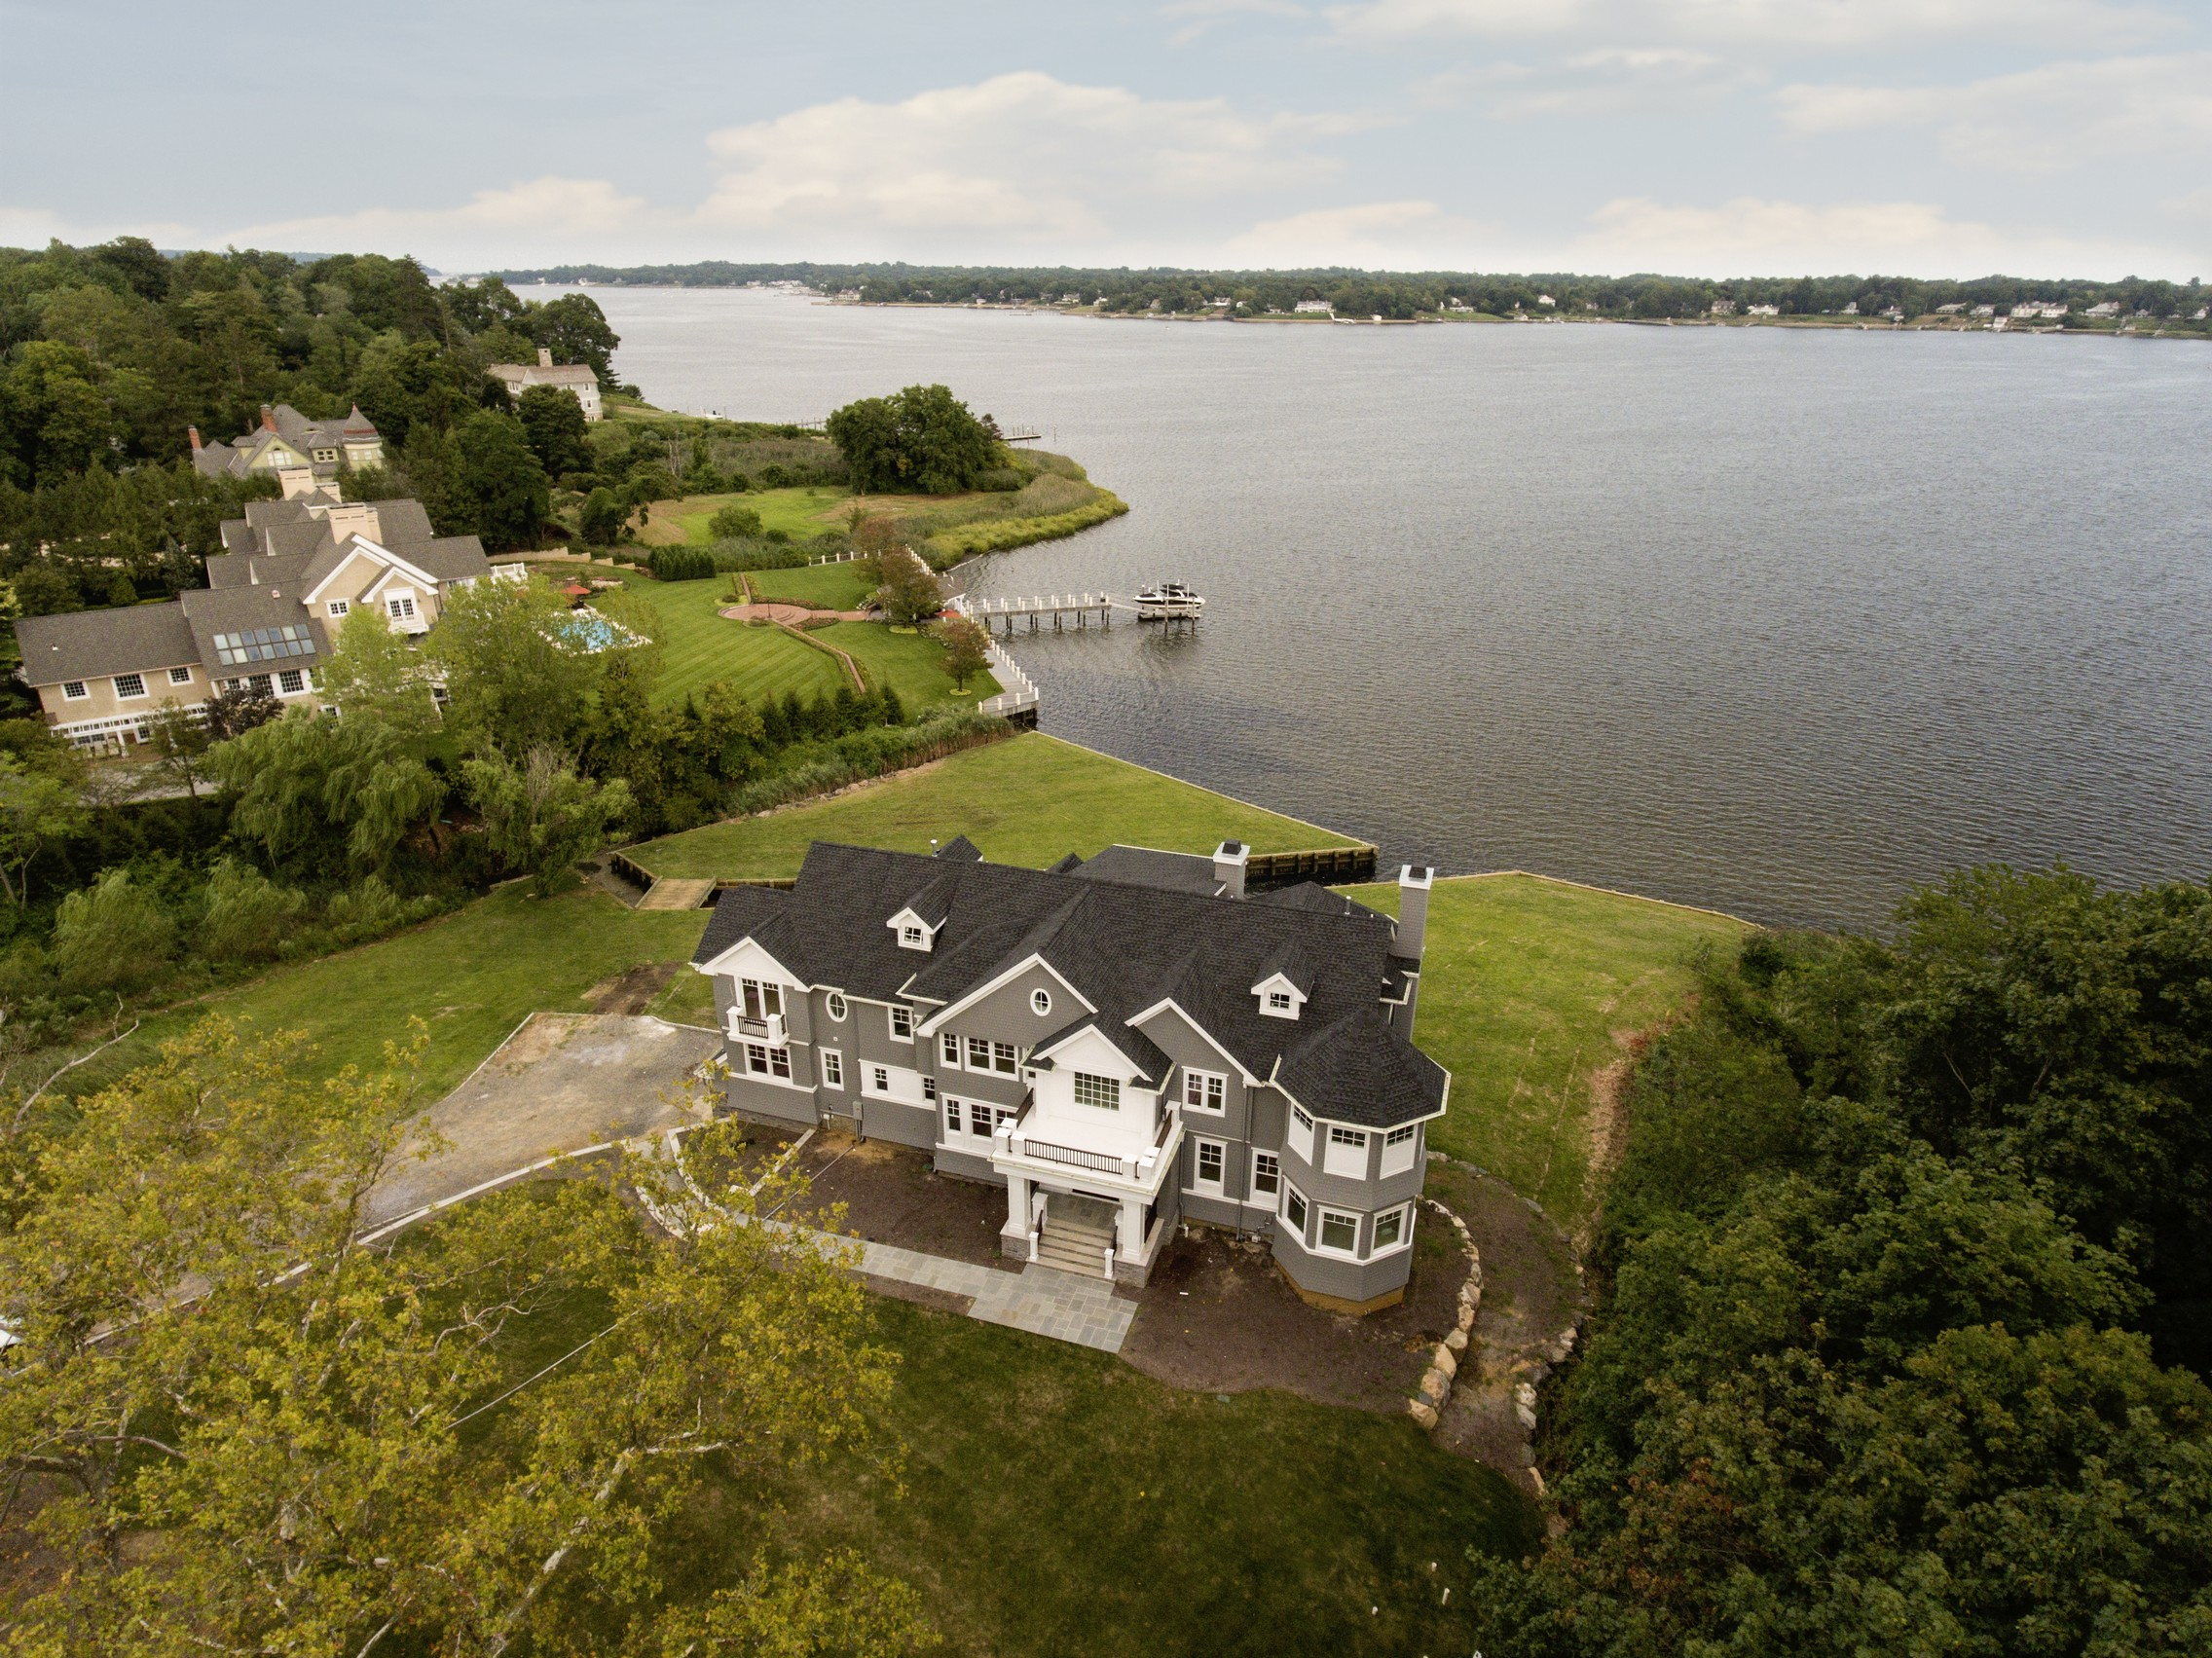 Single Family Home for Sale at Middletown NJ - Waterfront New Construction 444 Navesink River Rd. Middletown, New Jersey, 07748 United States